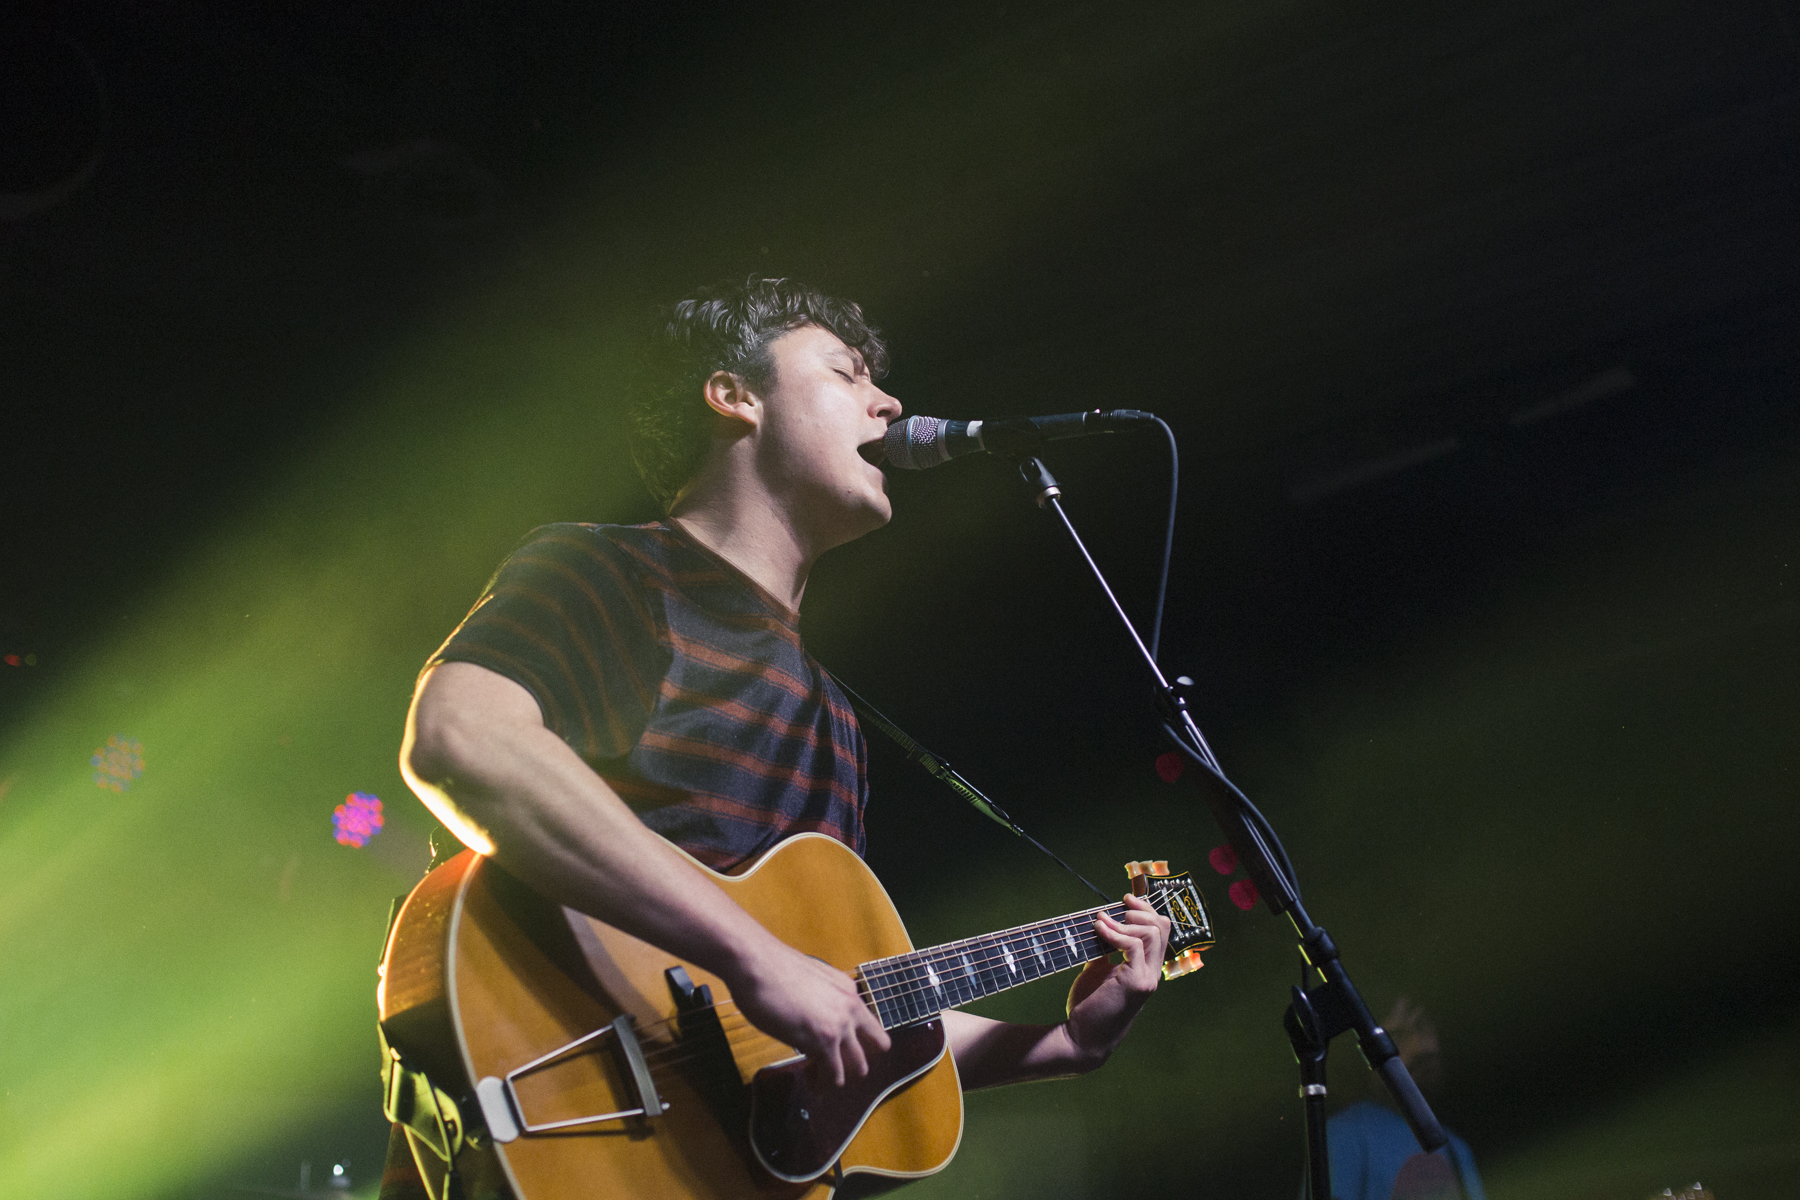 JAW_FrontBottoms-0090.jpg